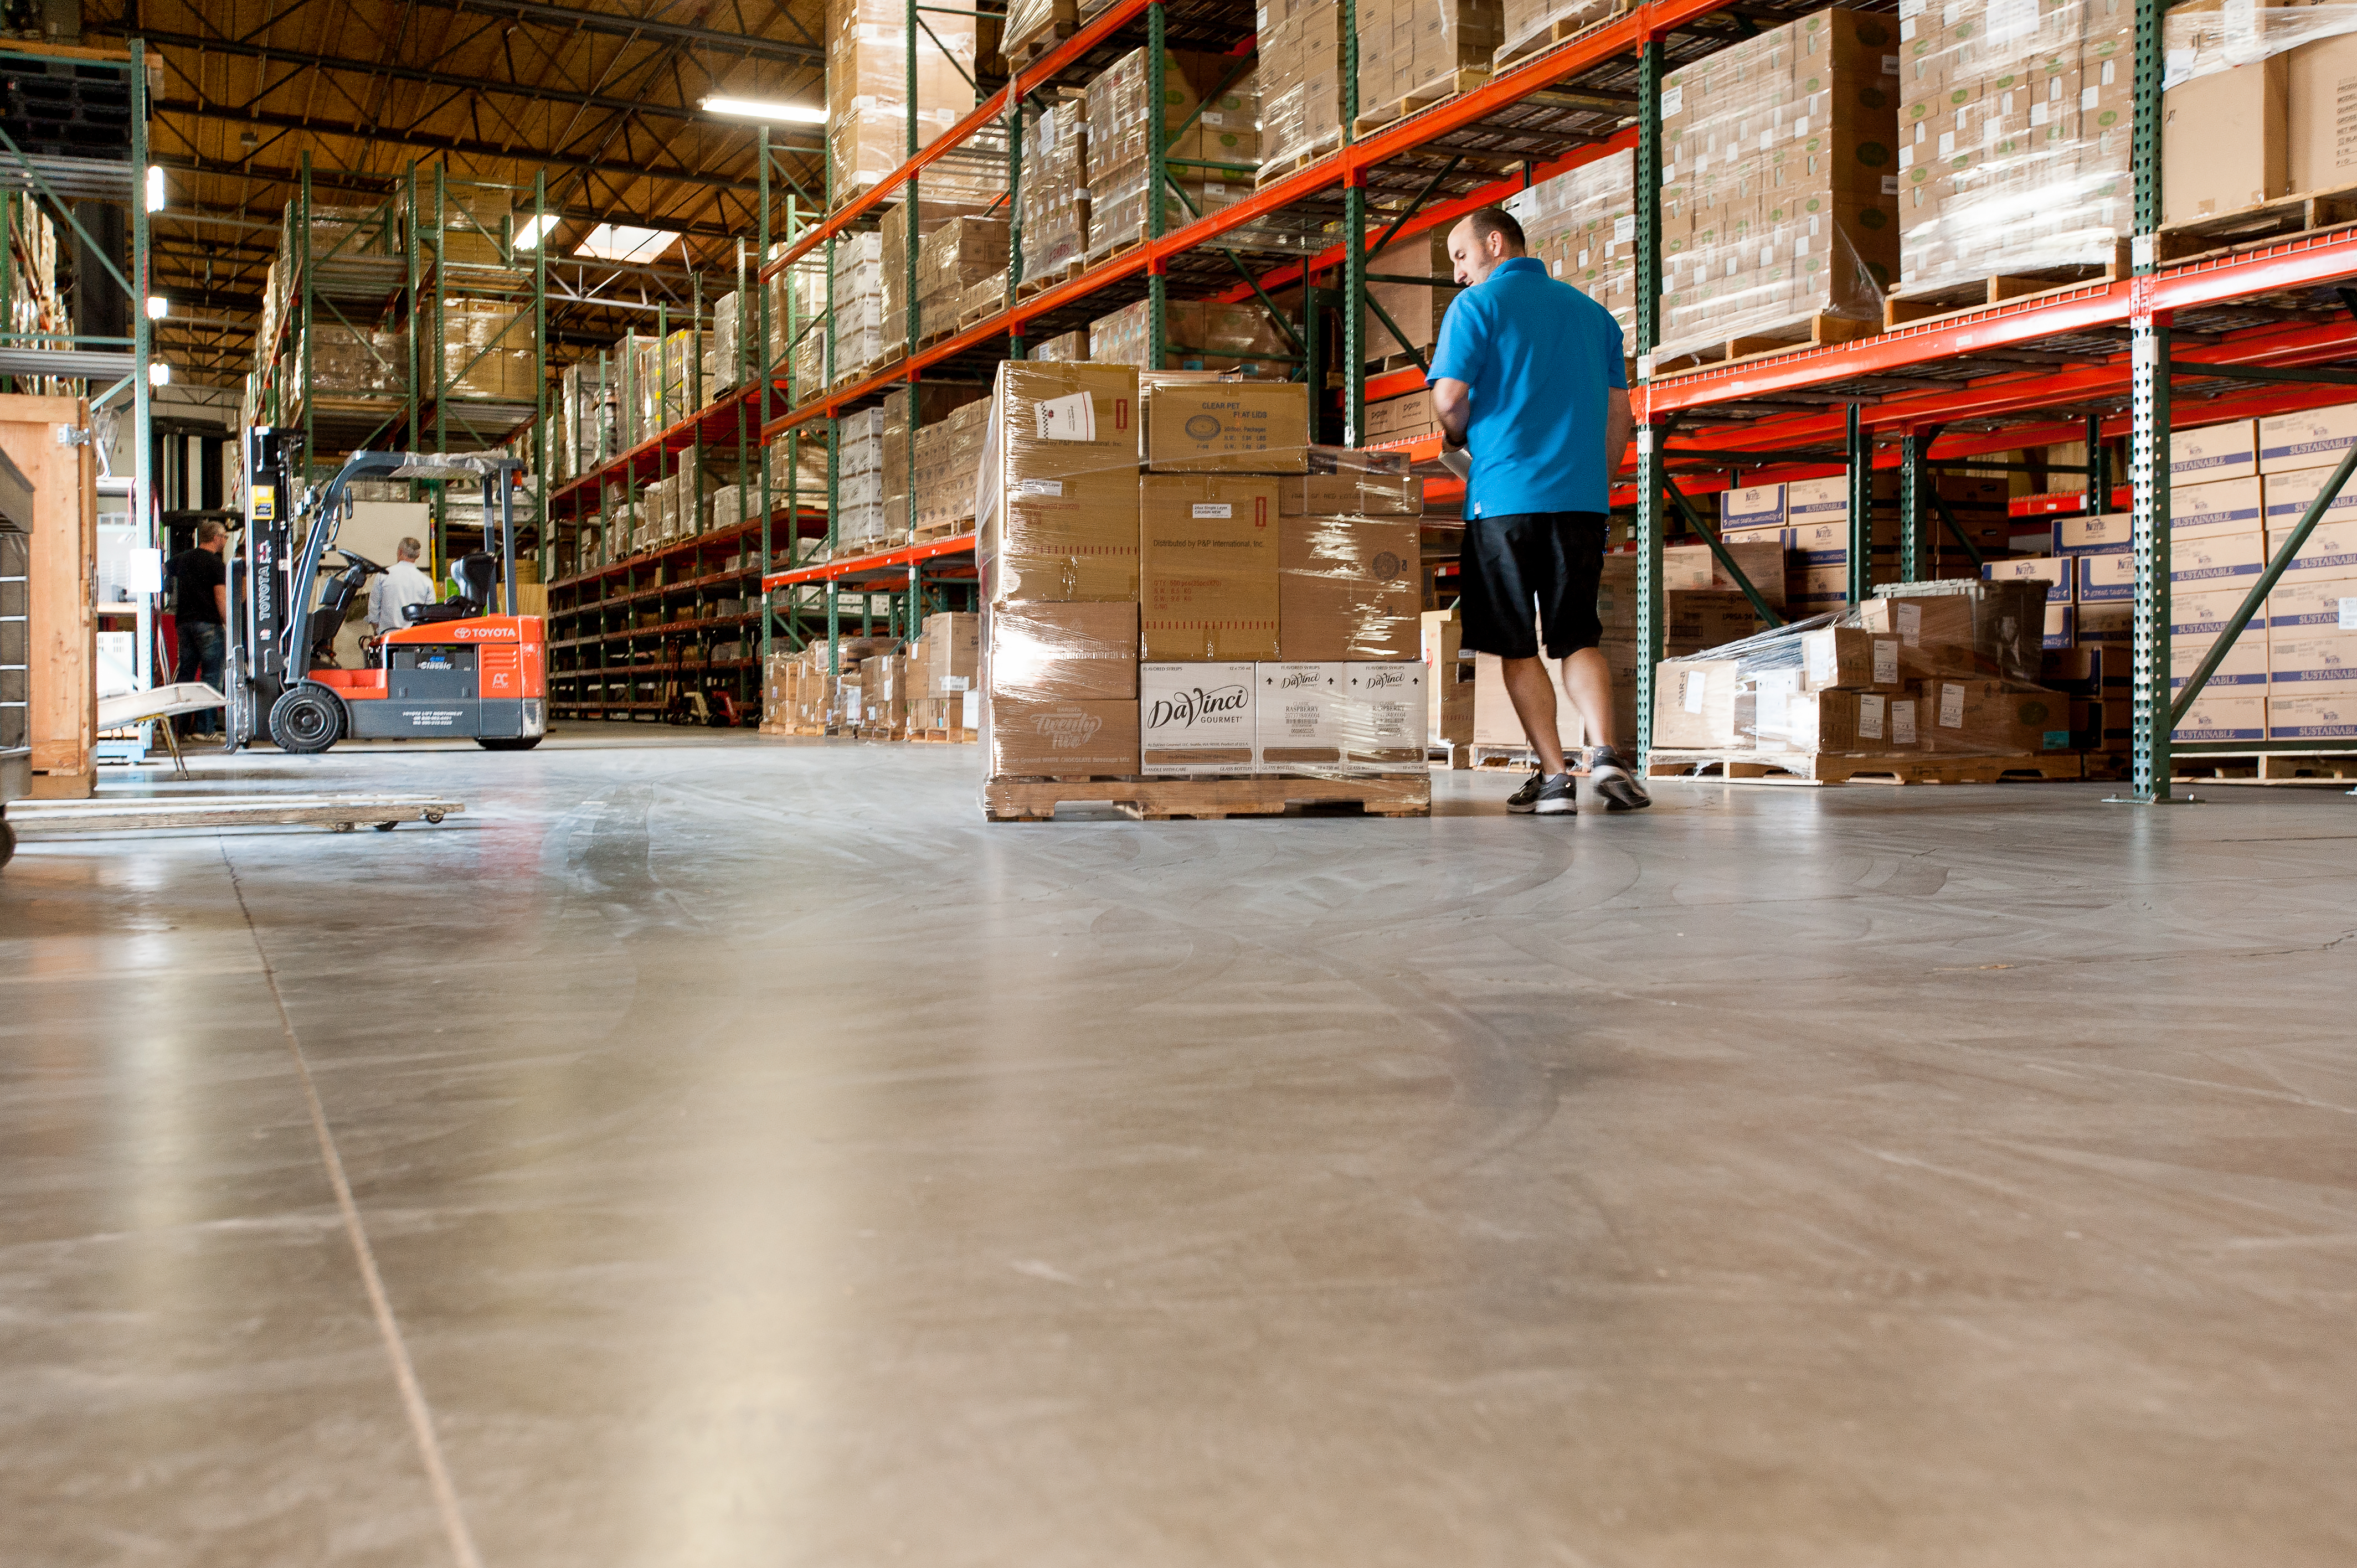 On-demand warehouses power today's hip consumer brands